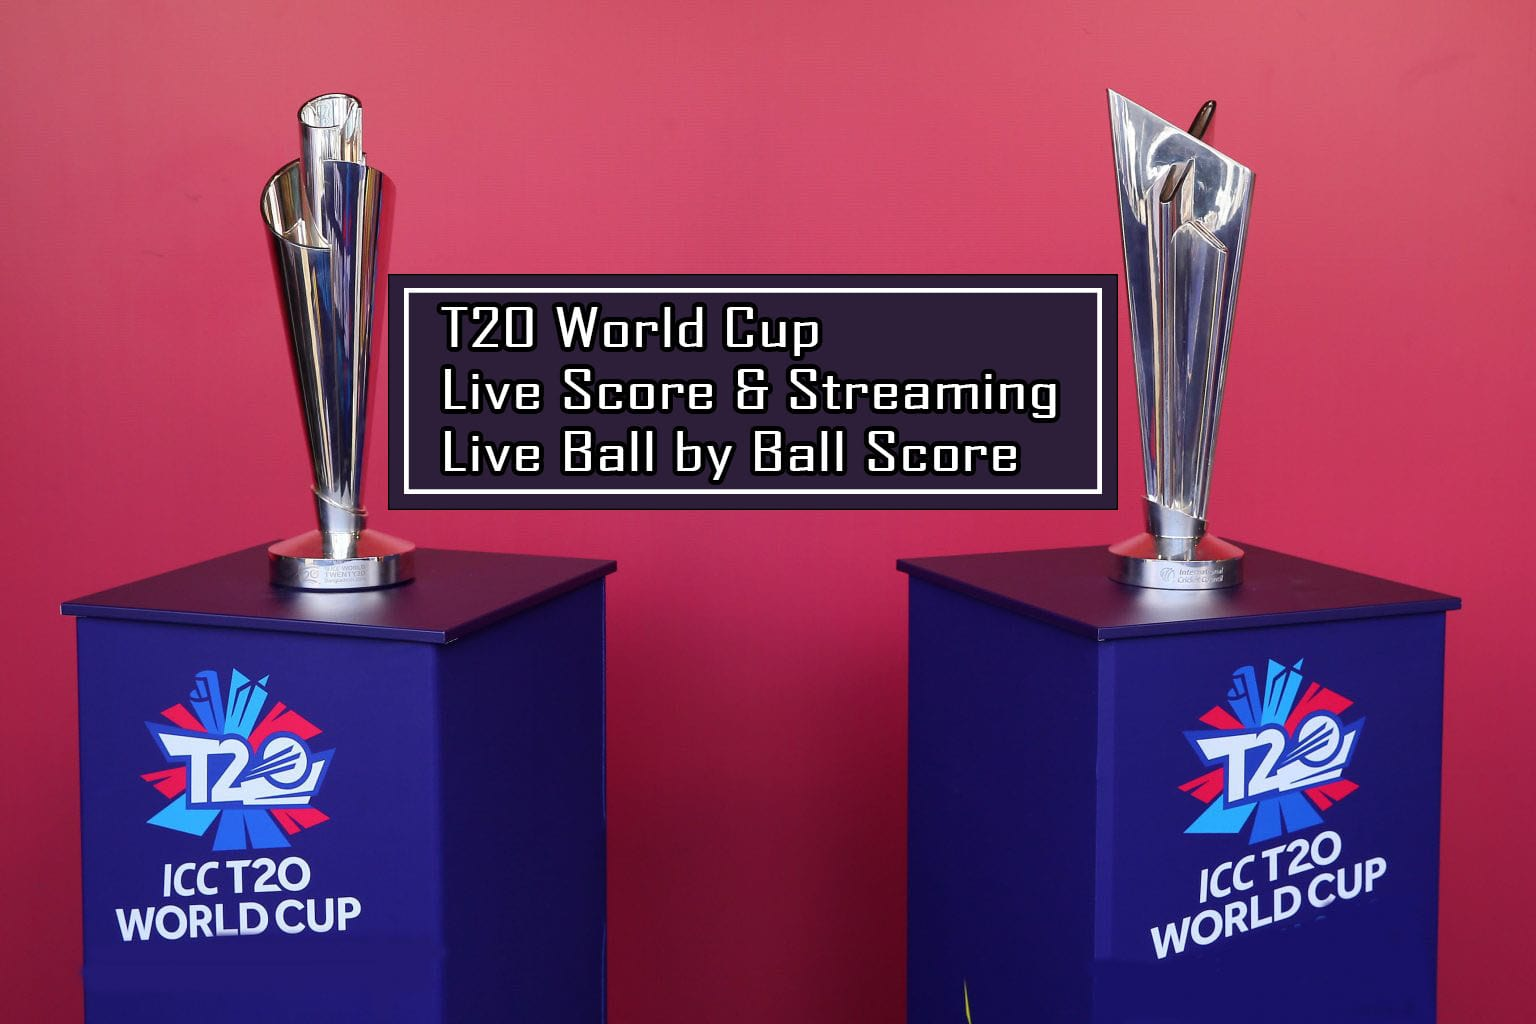 T20 World Cup Live Streaming